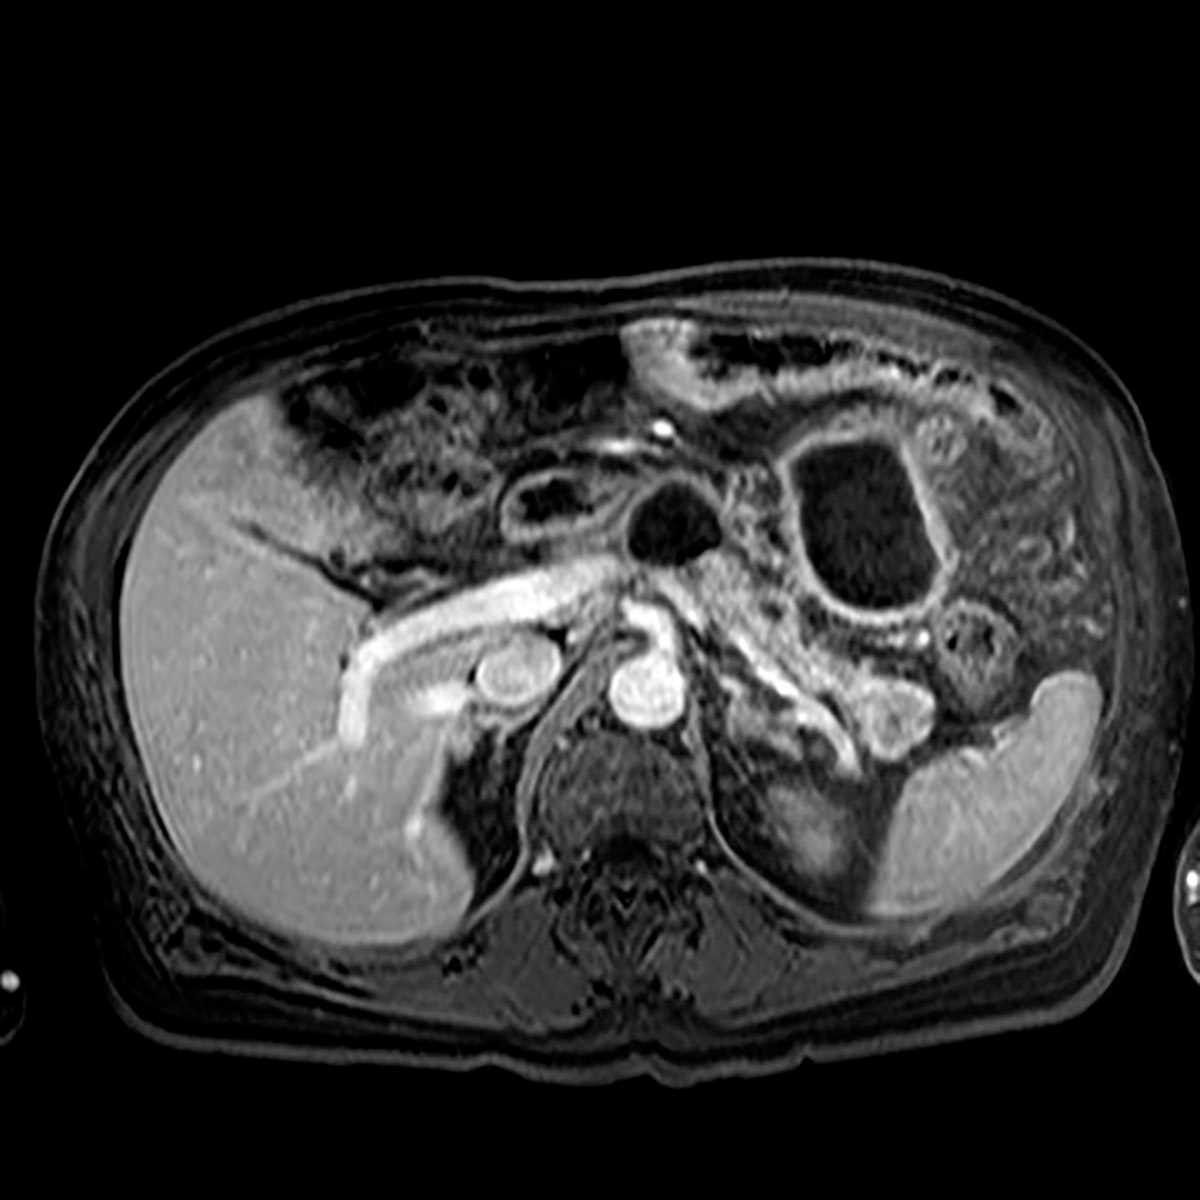 Chronic pancreatitis - CTisus CT Scanning